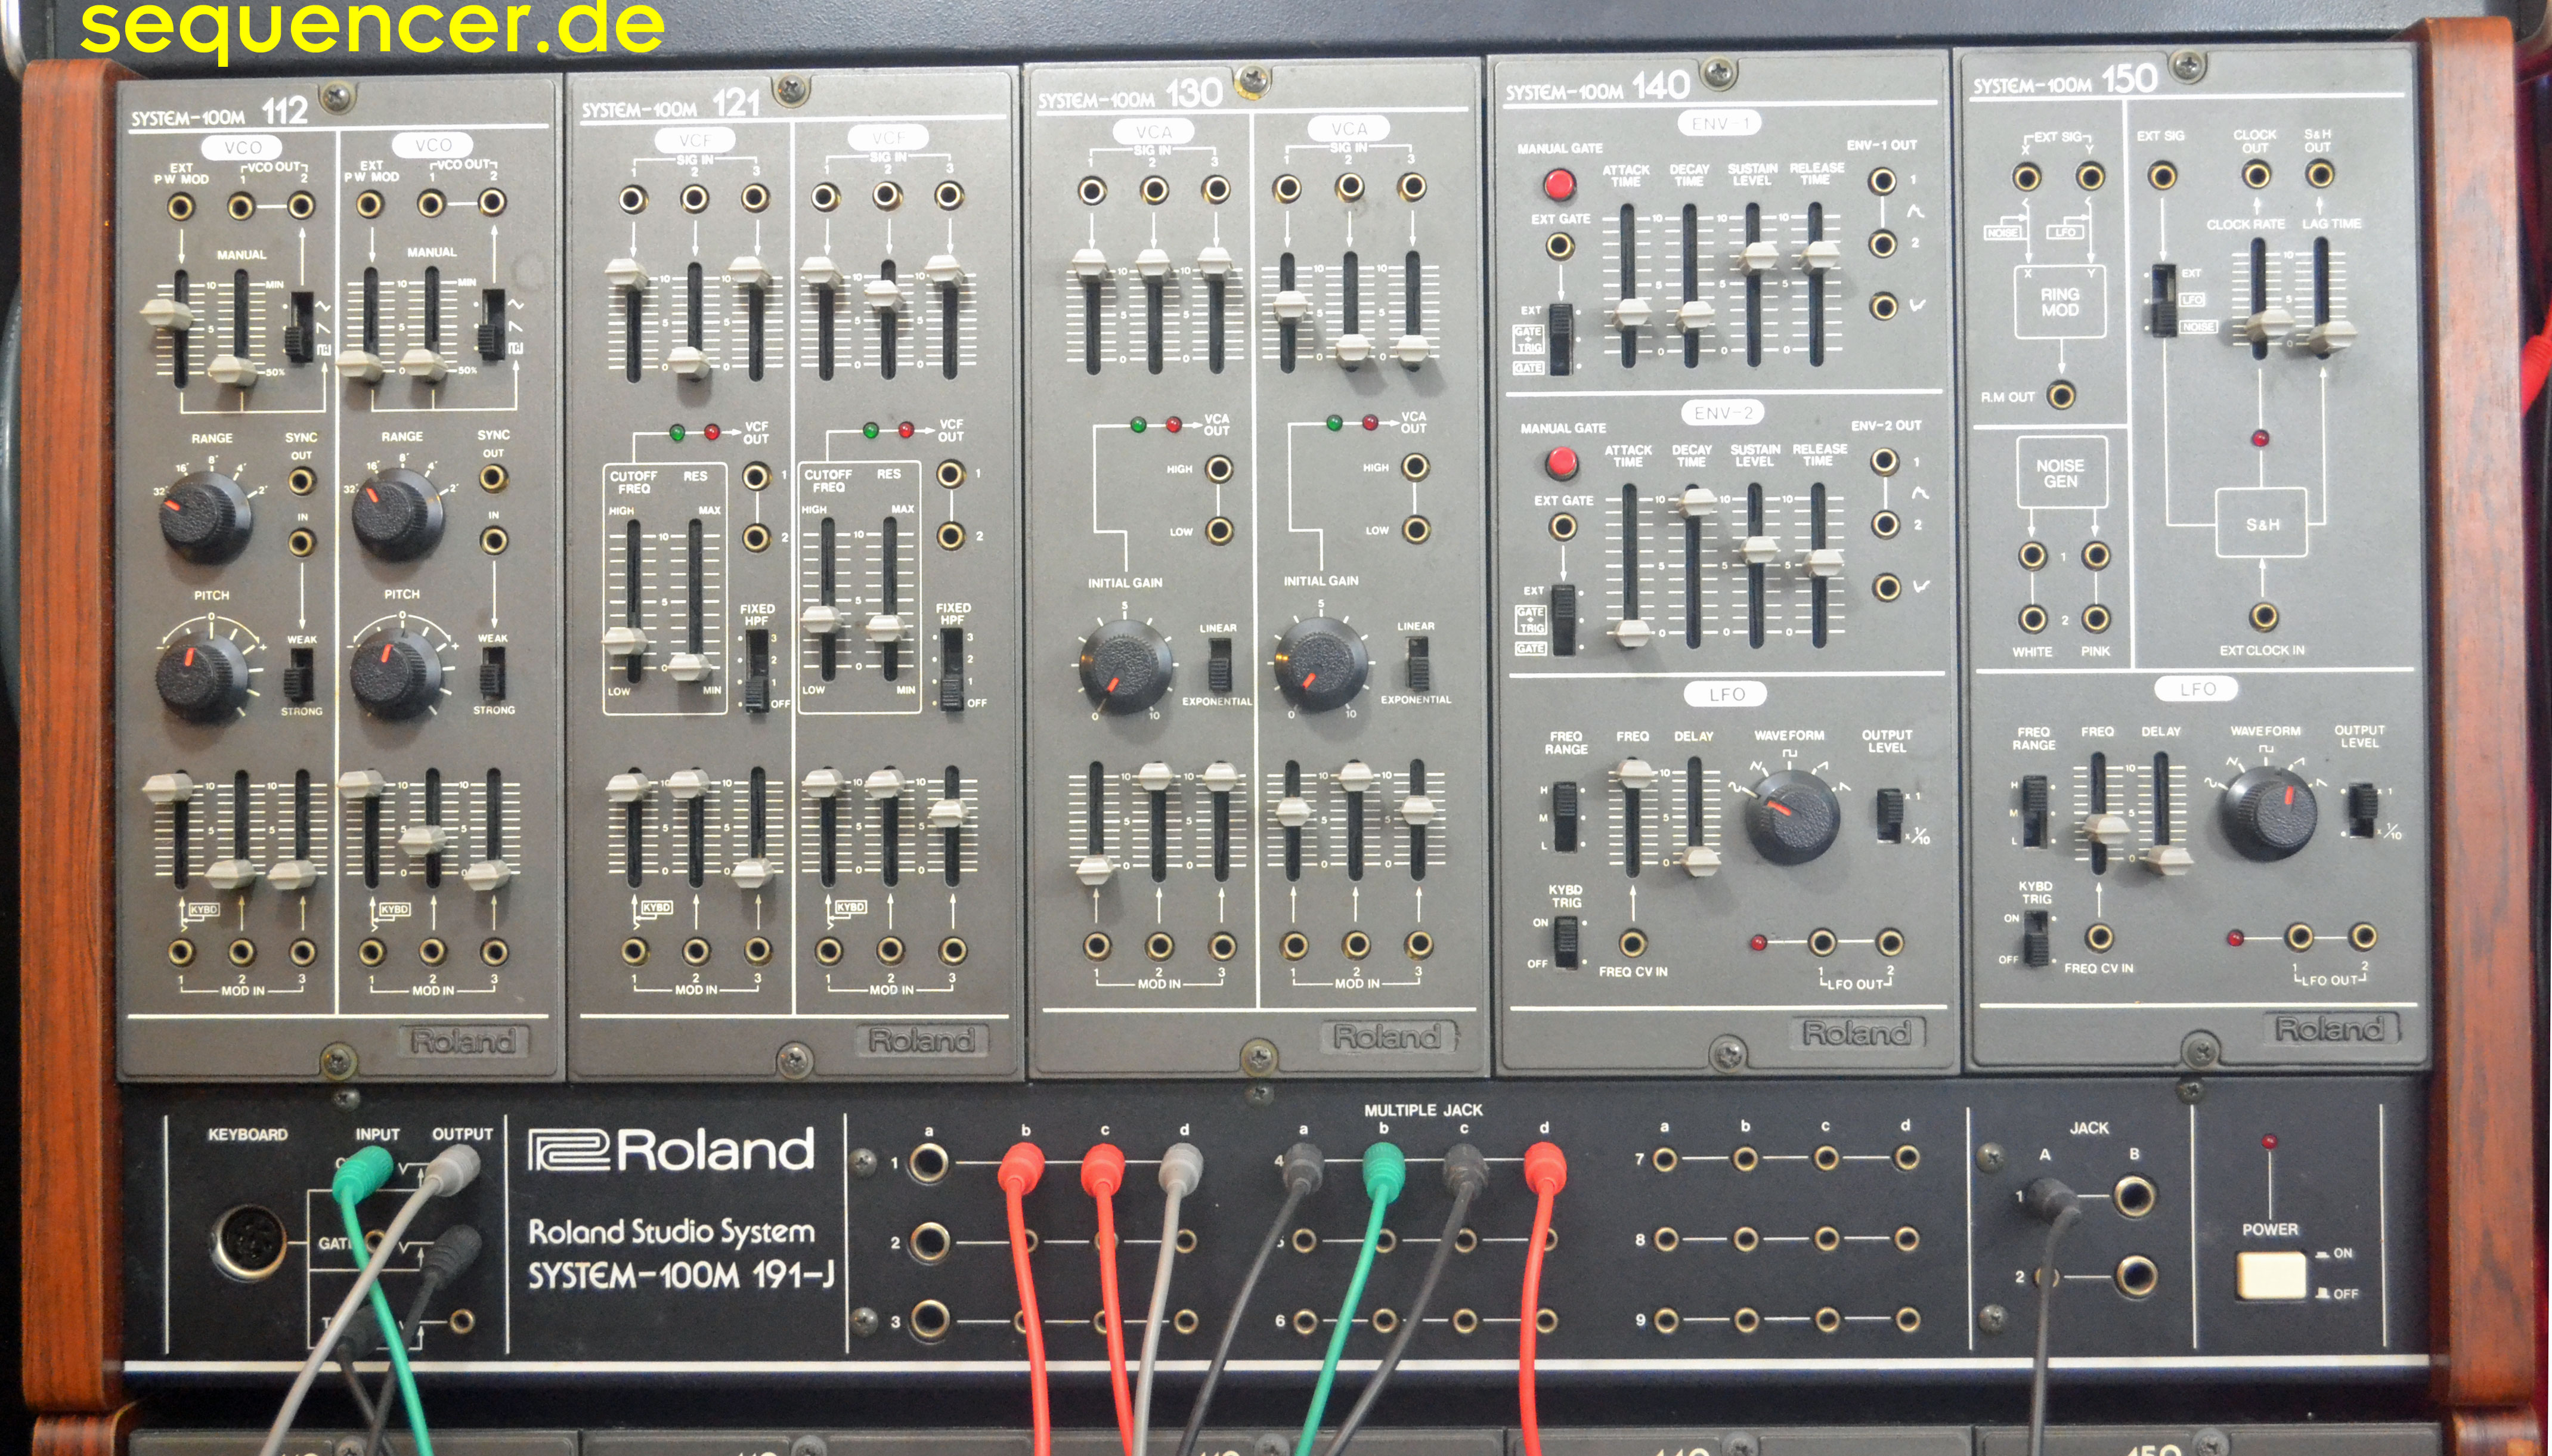 Roland System 100m Roland System 100m synthesizer